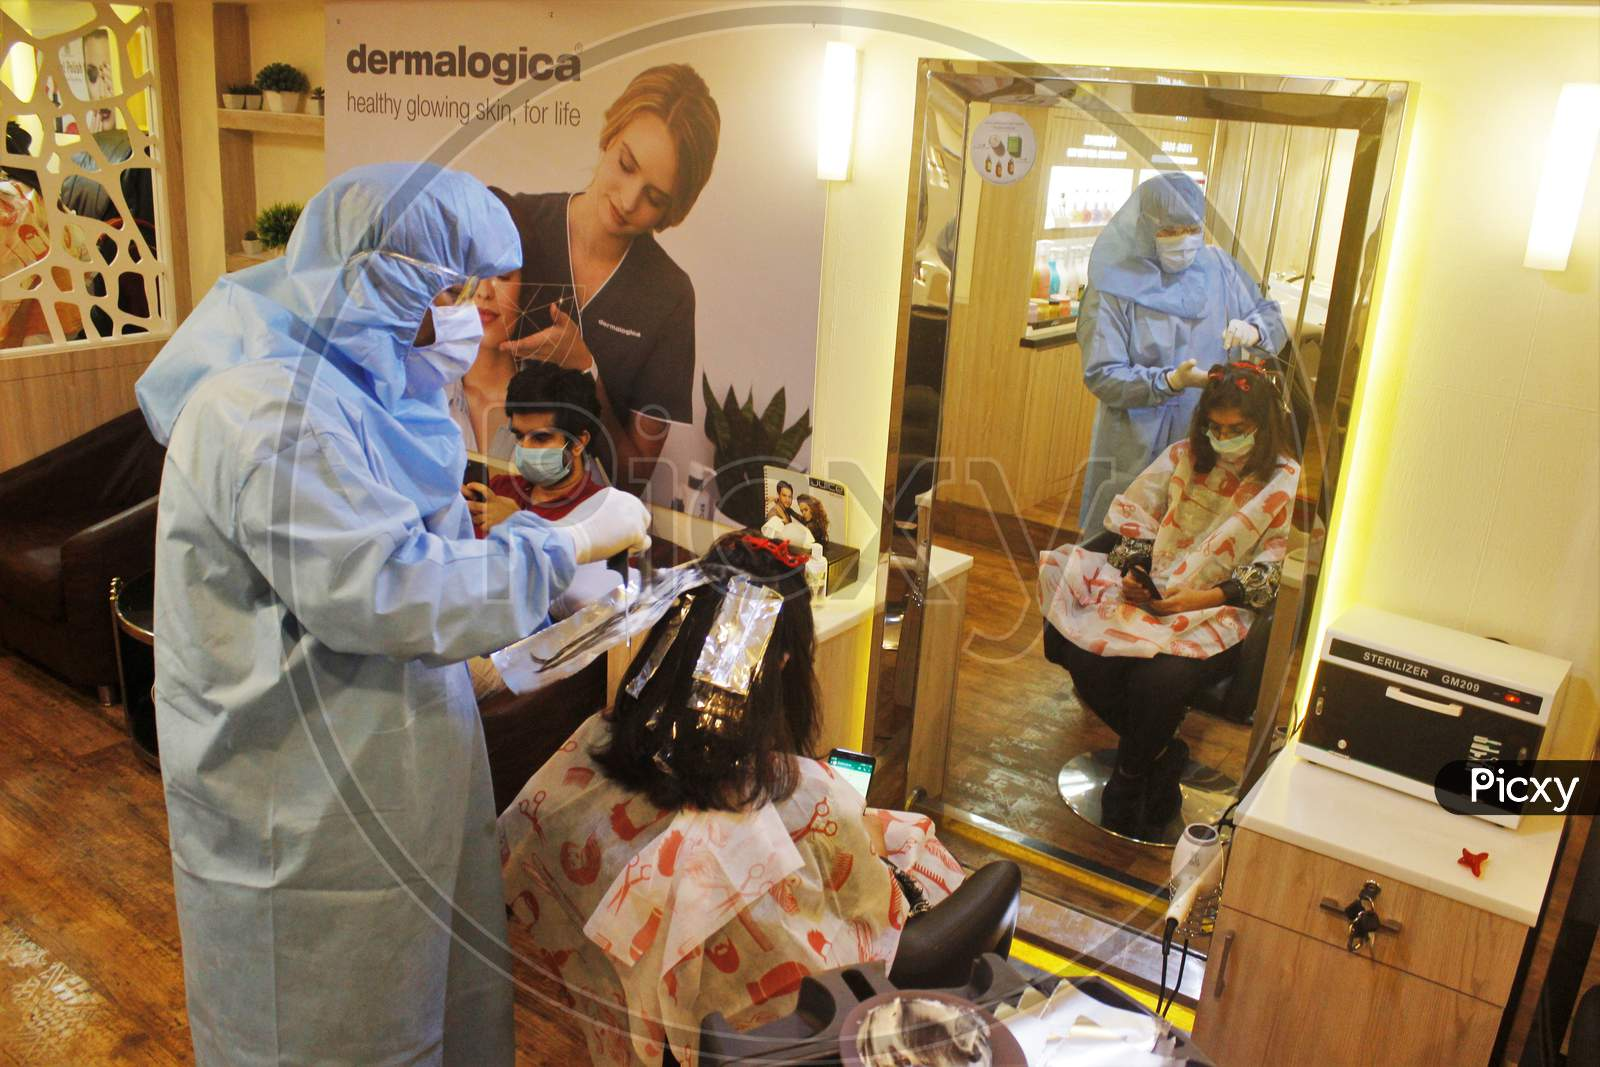 Hair stylists wearing protective gear attend to a customer with face masks at a salon in Mumbai, India, on June 29, 2020.